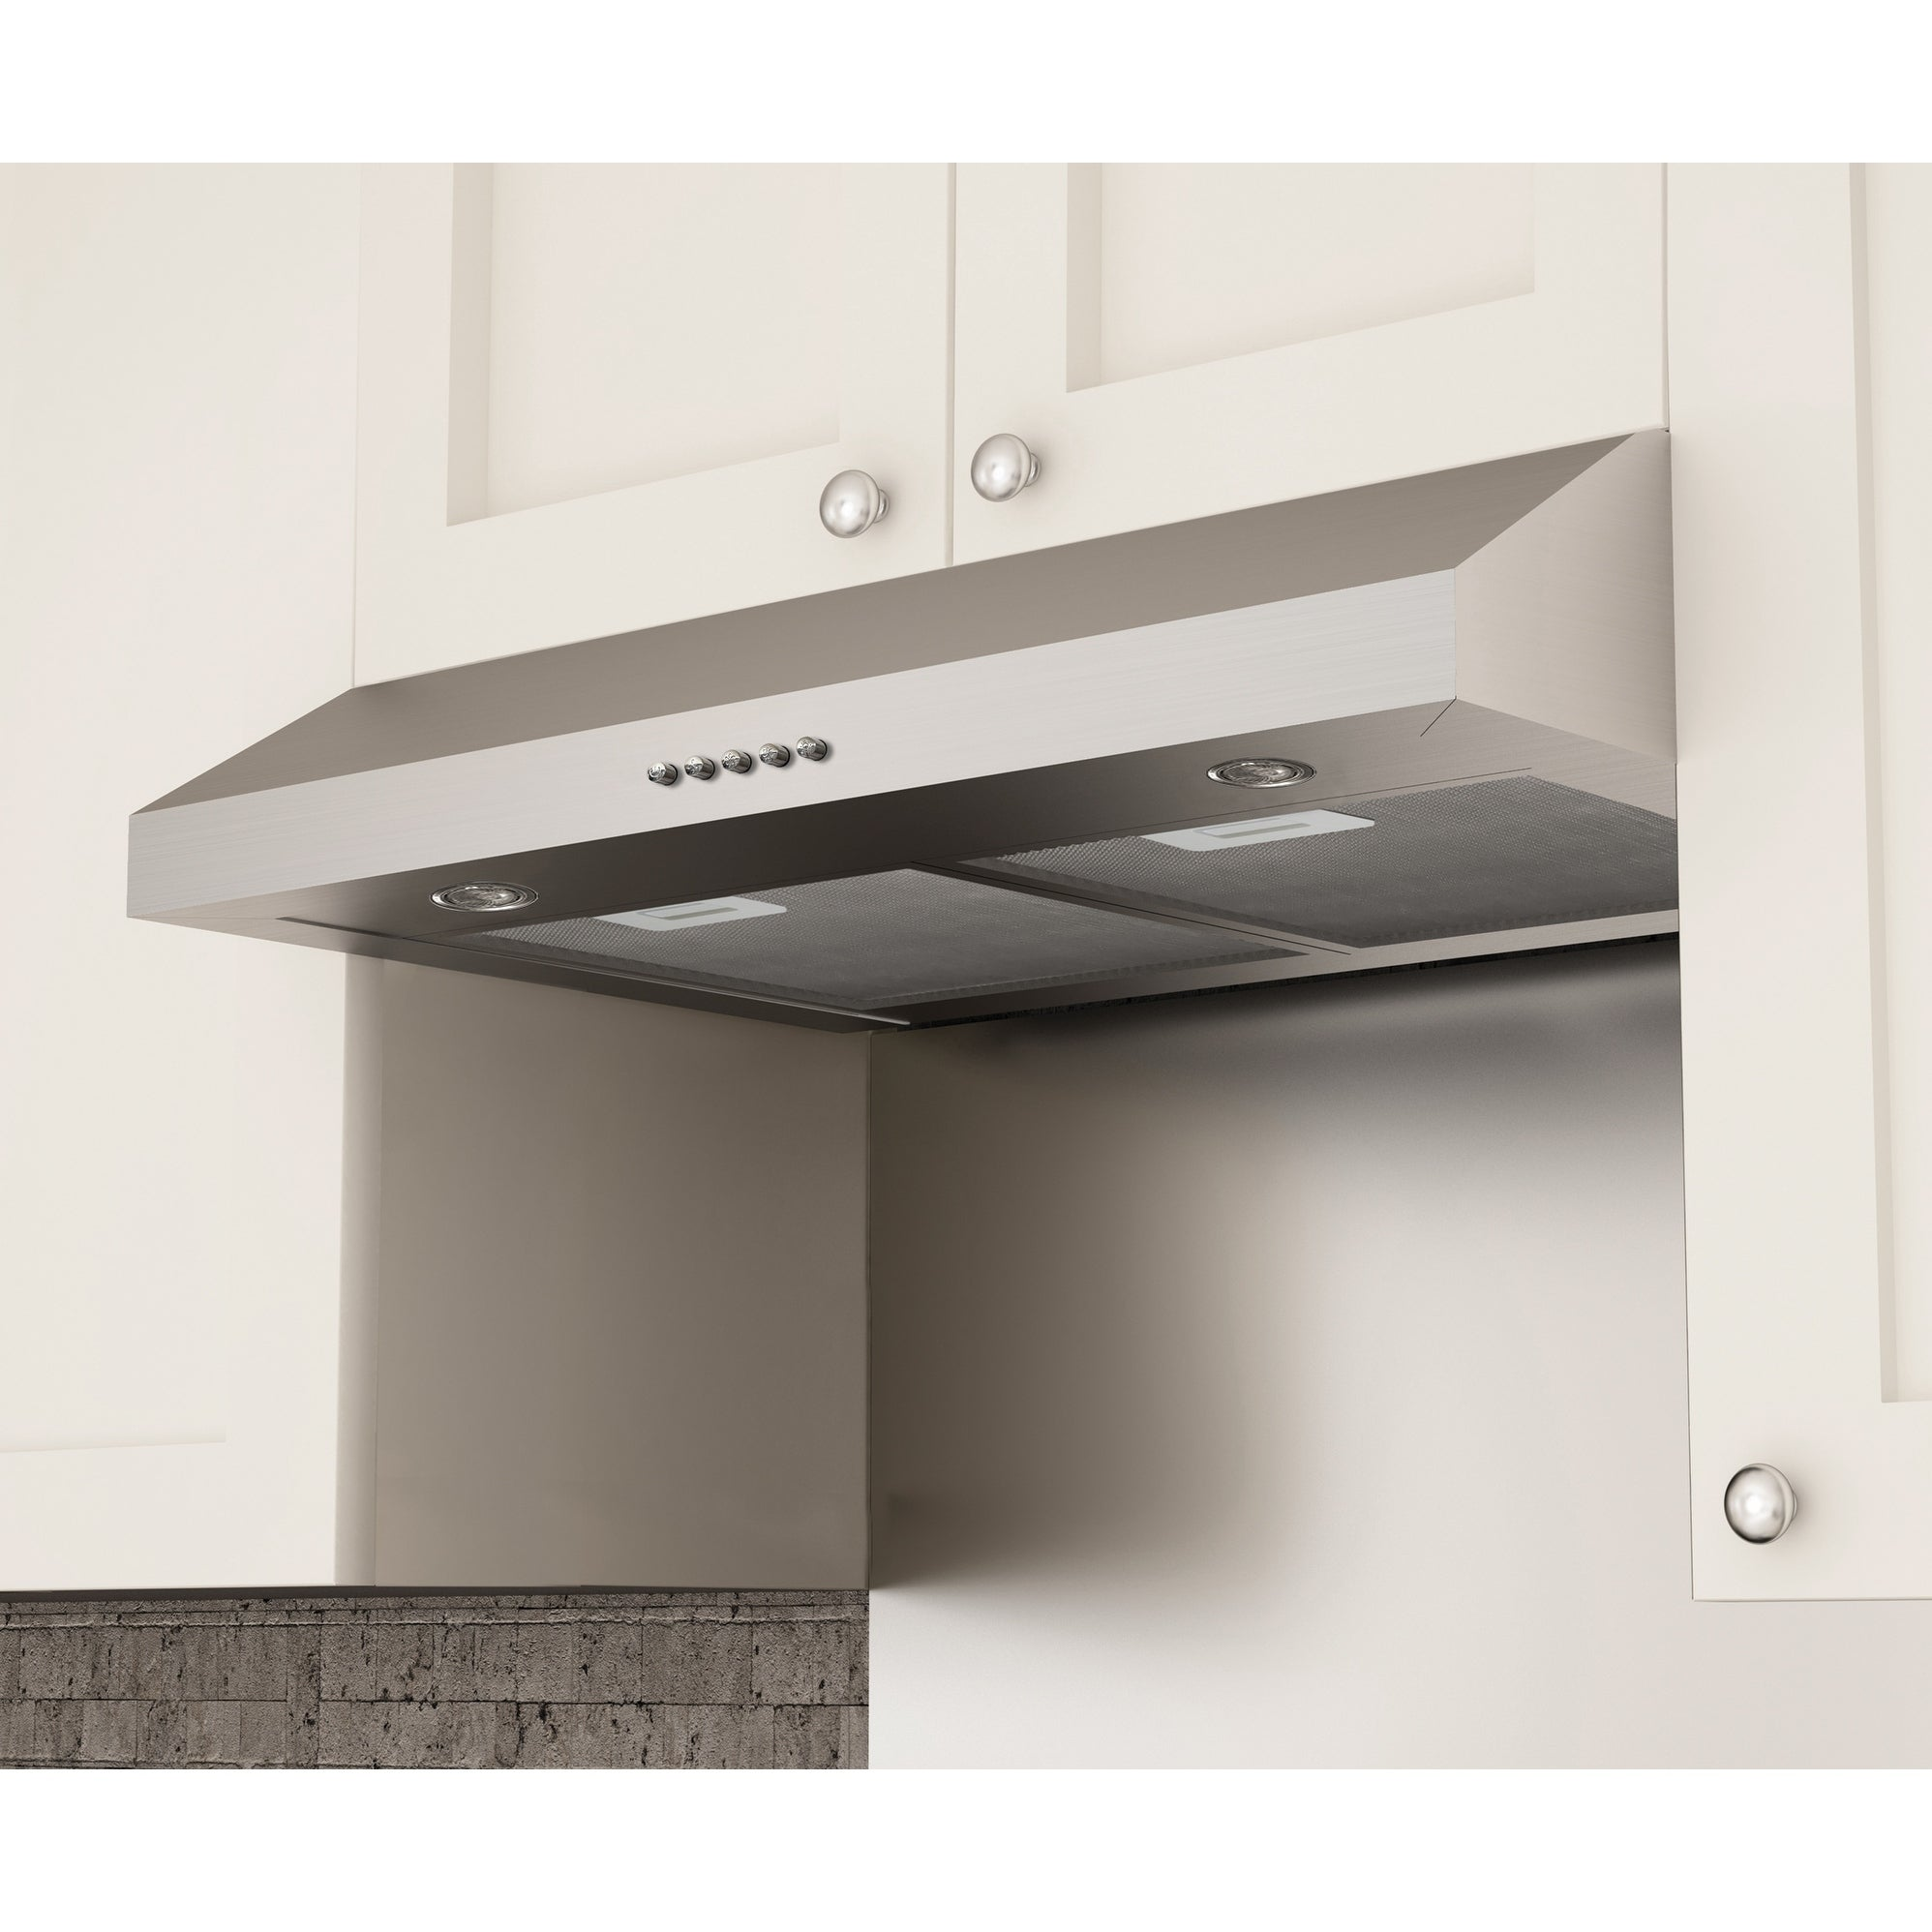 Wonderful Shop Ancona Slim SD330 30 In. Under Cabinet Range Hood In Stainless Steel    Free Shipping Today   Overstock.com   17016521